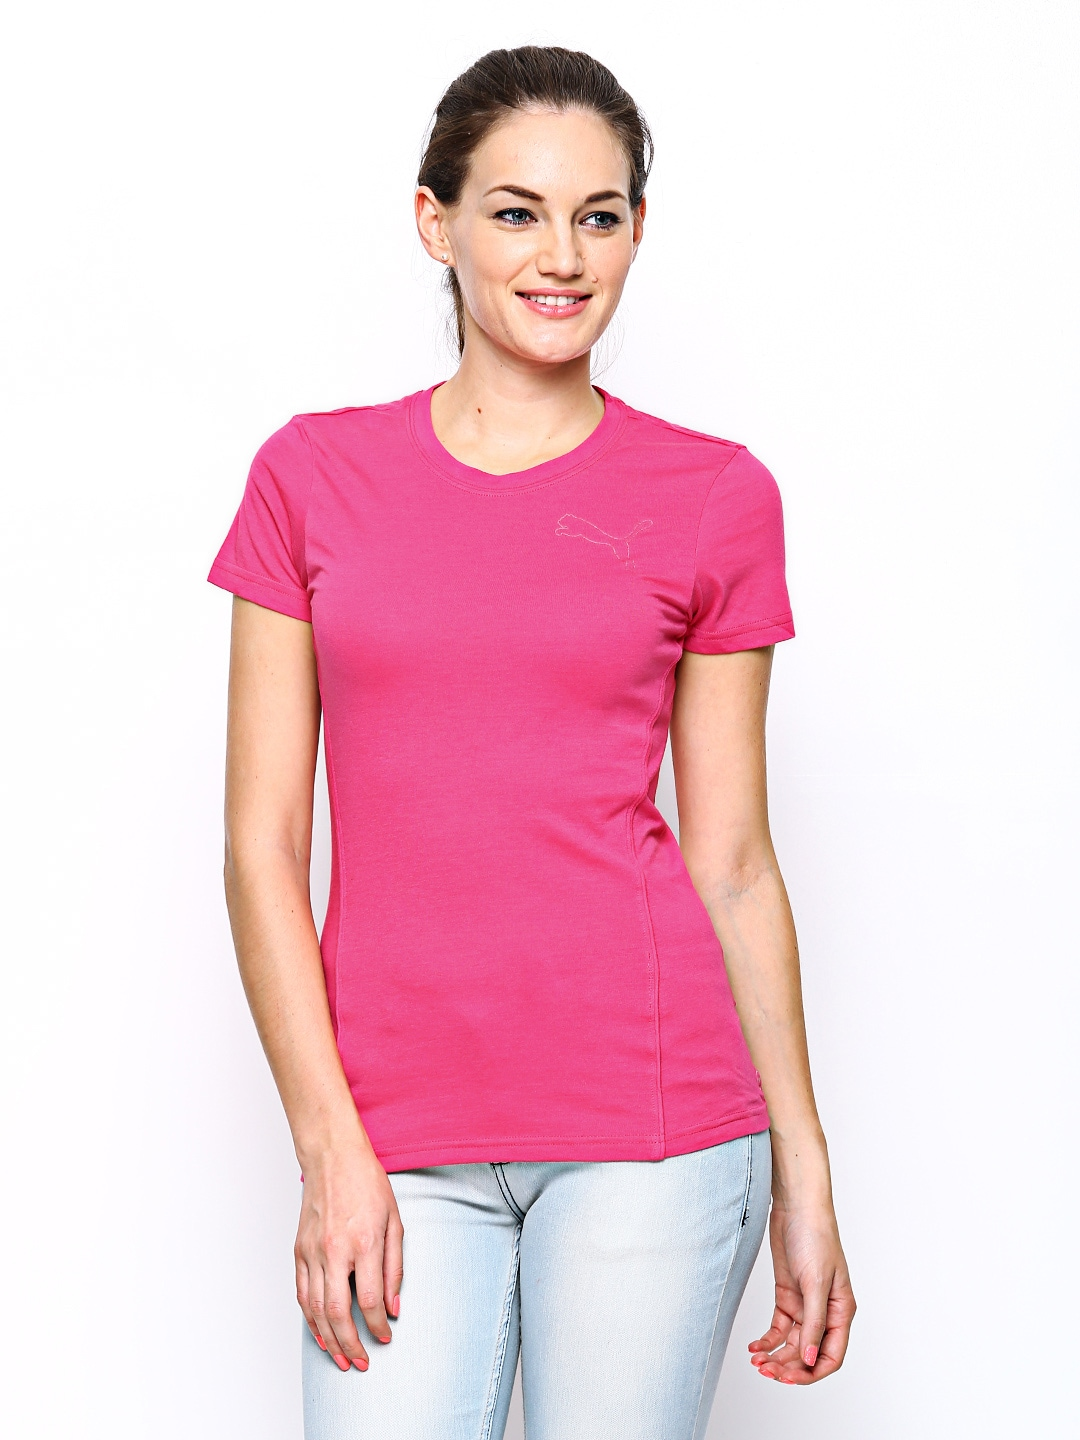 Find great deals on eBay for pink shirts for women. Shop with confidence.